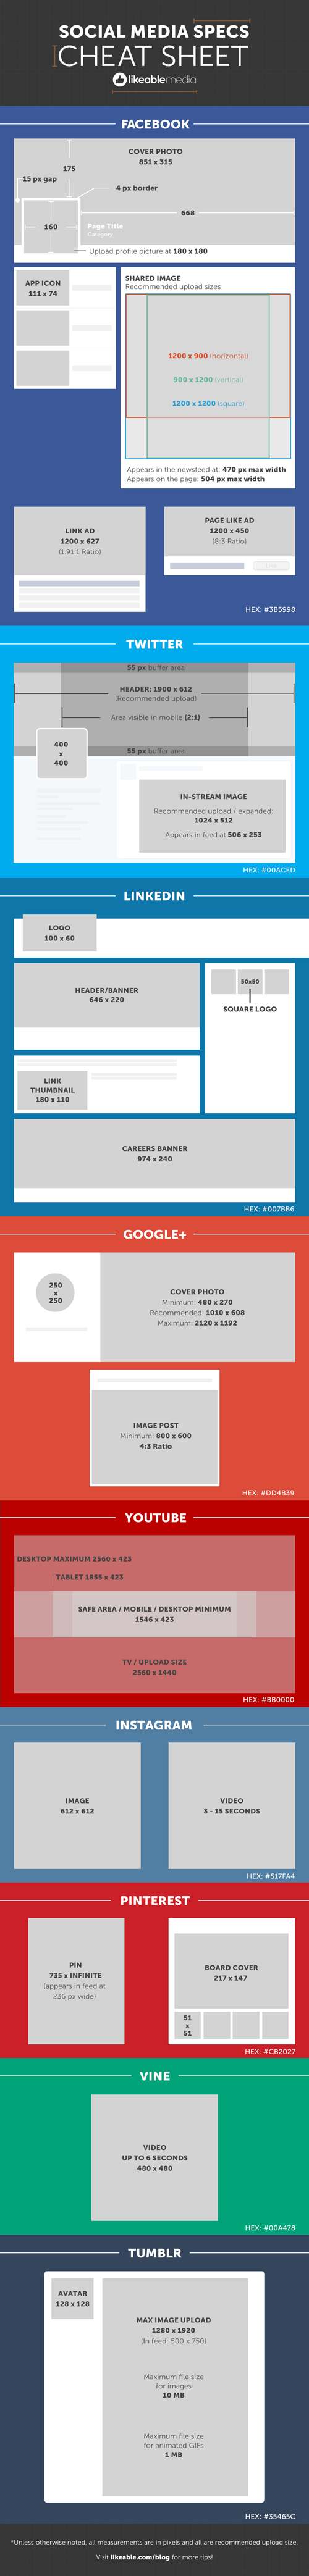 The Ultimate Cheat Sheet for Social Media Dimensions